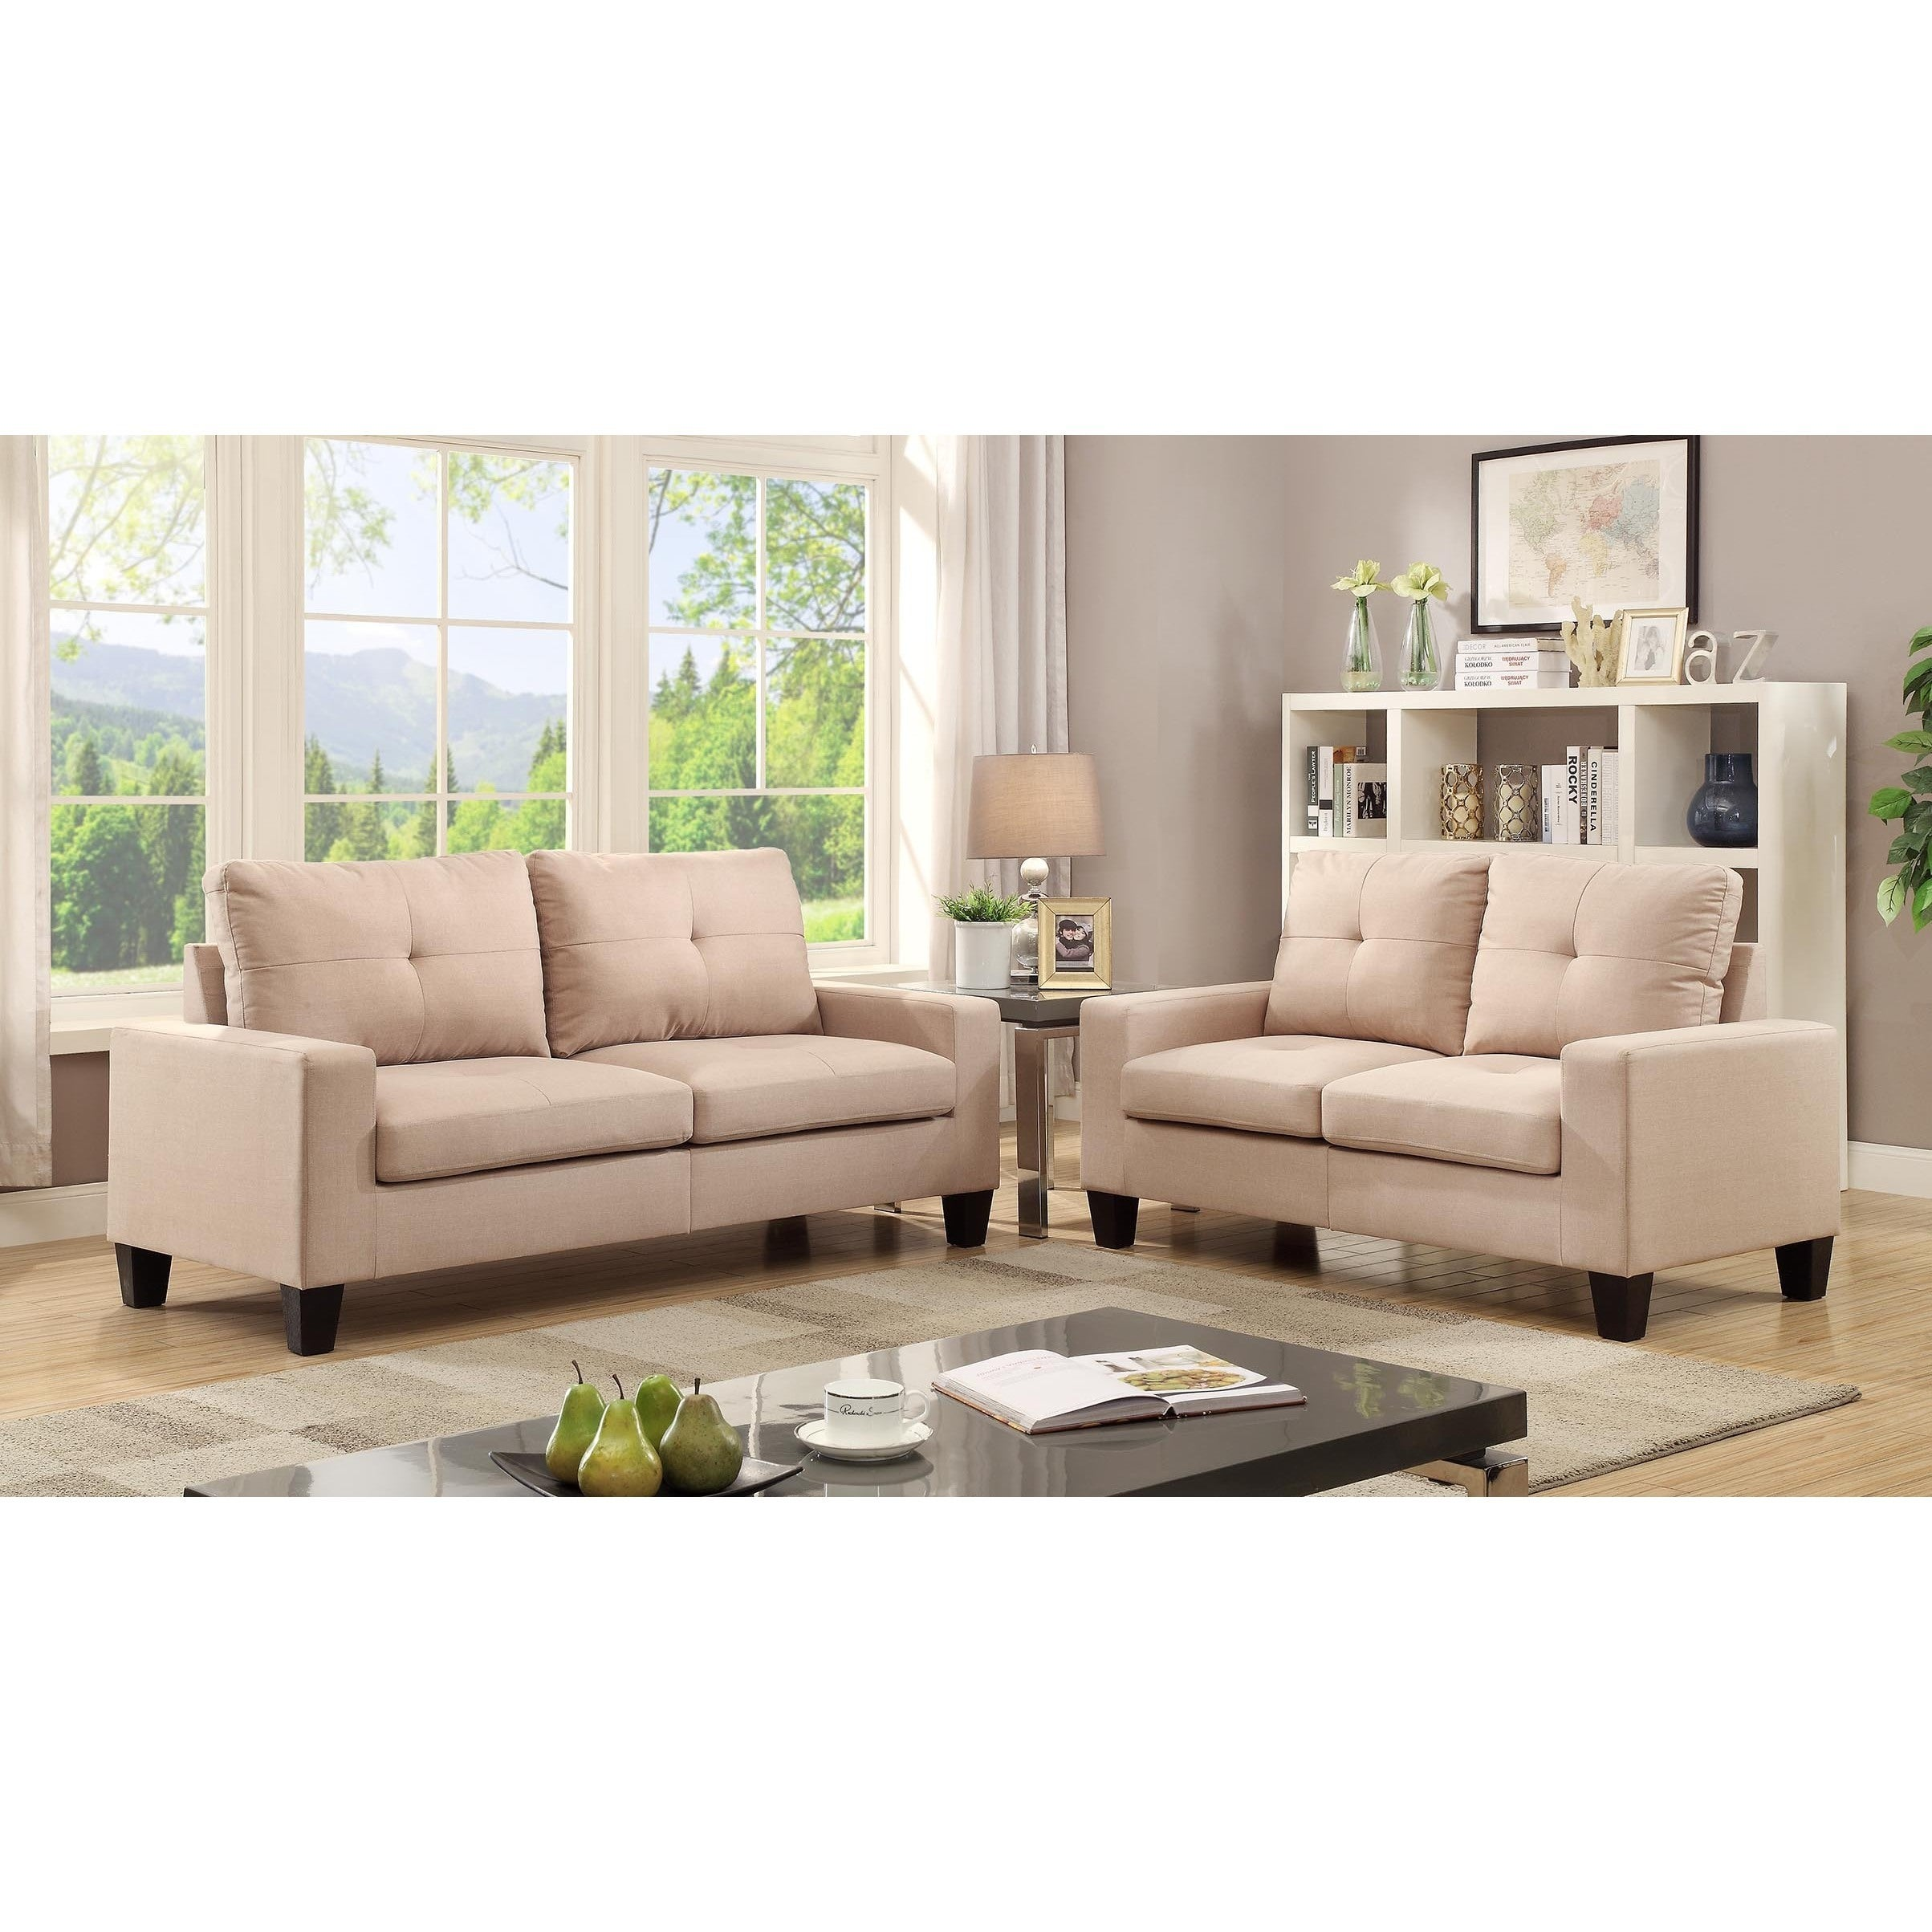 Acme Furniture Platinum II Sofa And Loveseat Living Room Set (4 Options  Available)